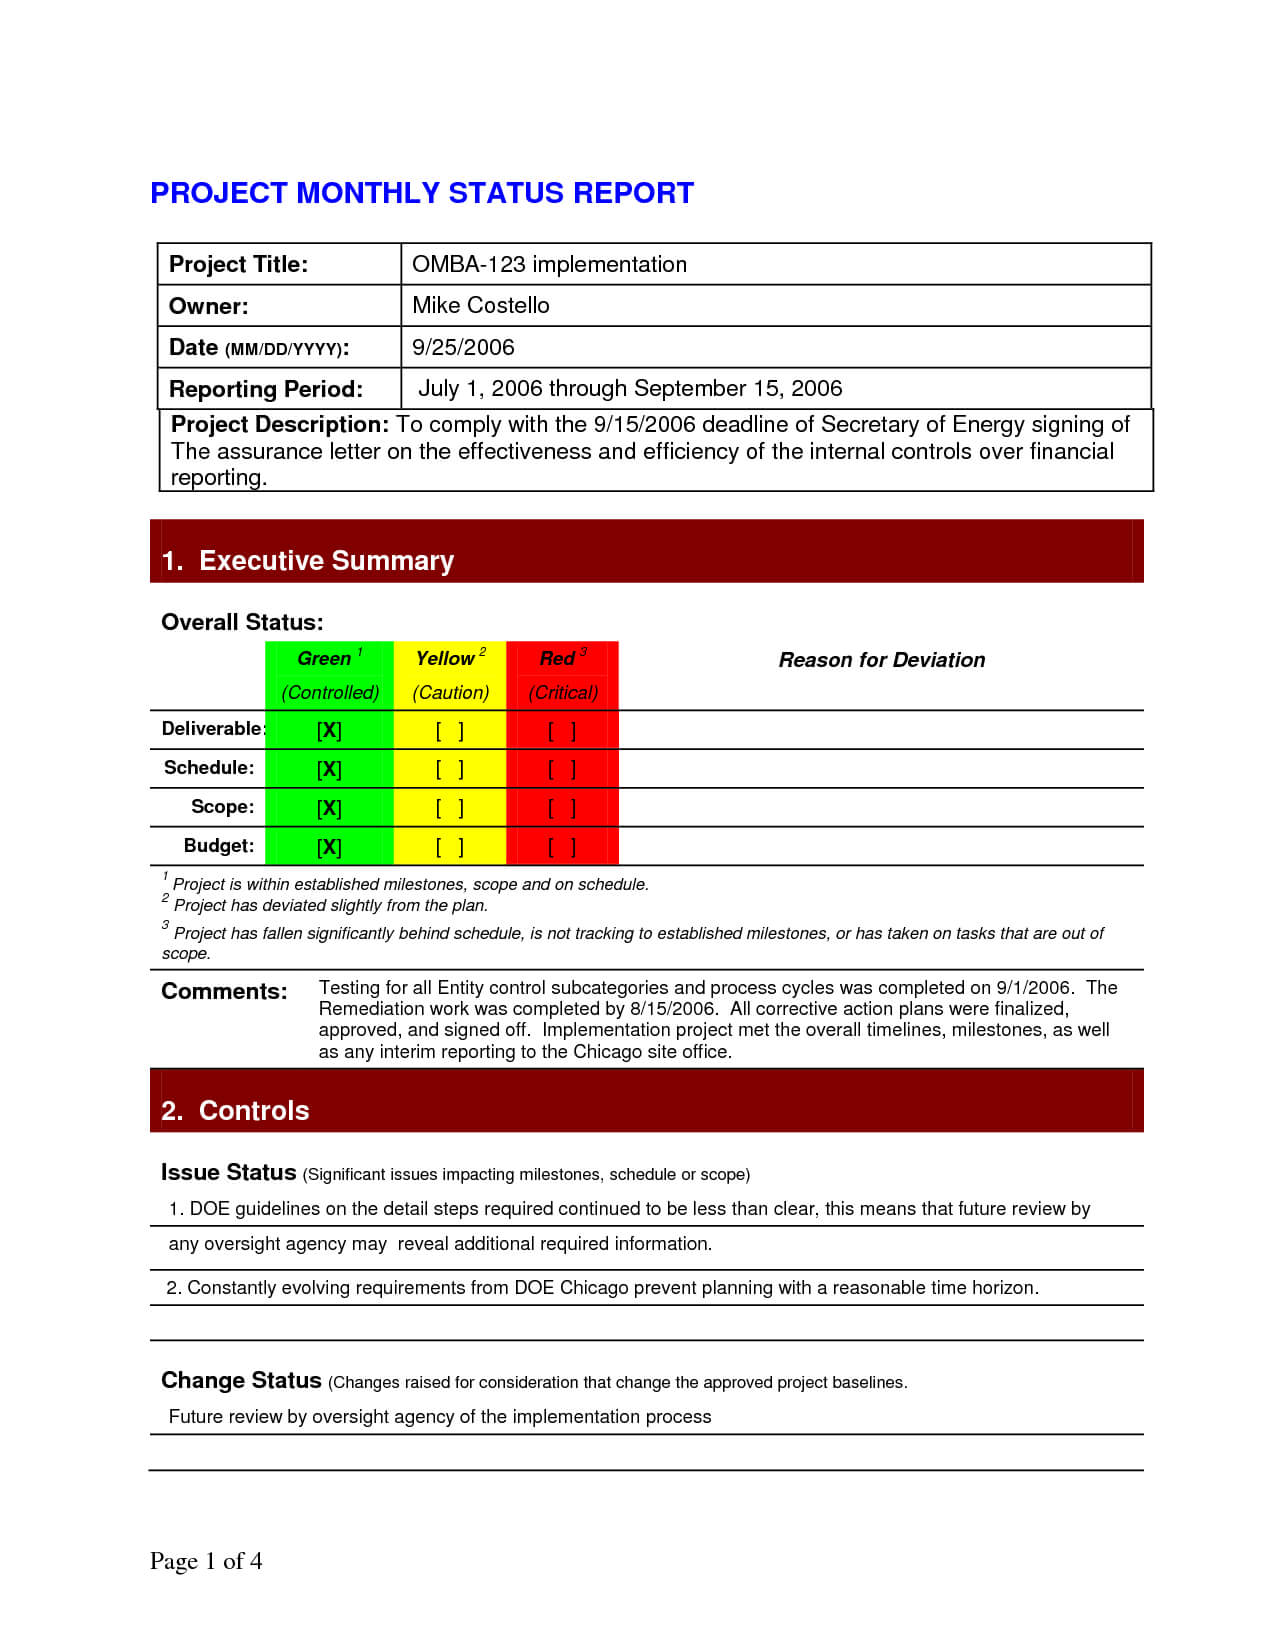 Project Status Report Template Weekly Sample Google Search Regarding Project Status Report Template Excel Download Filetype Xls